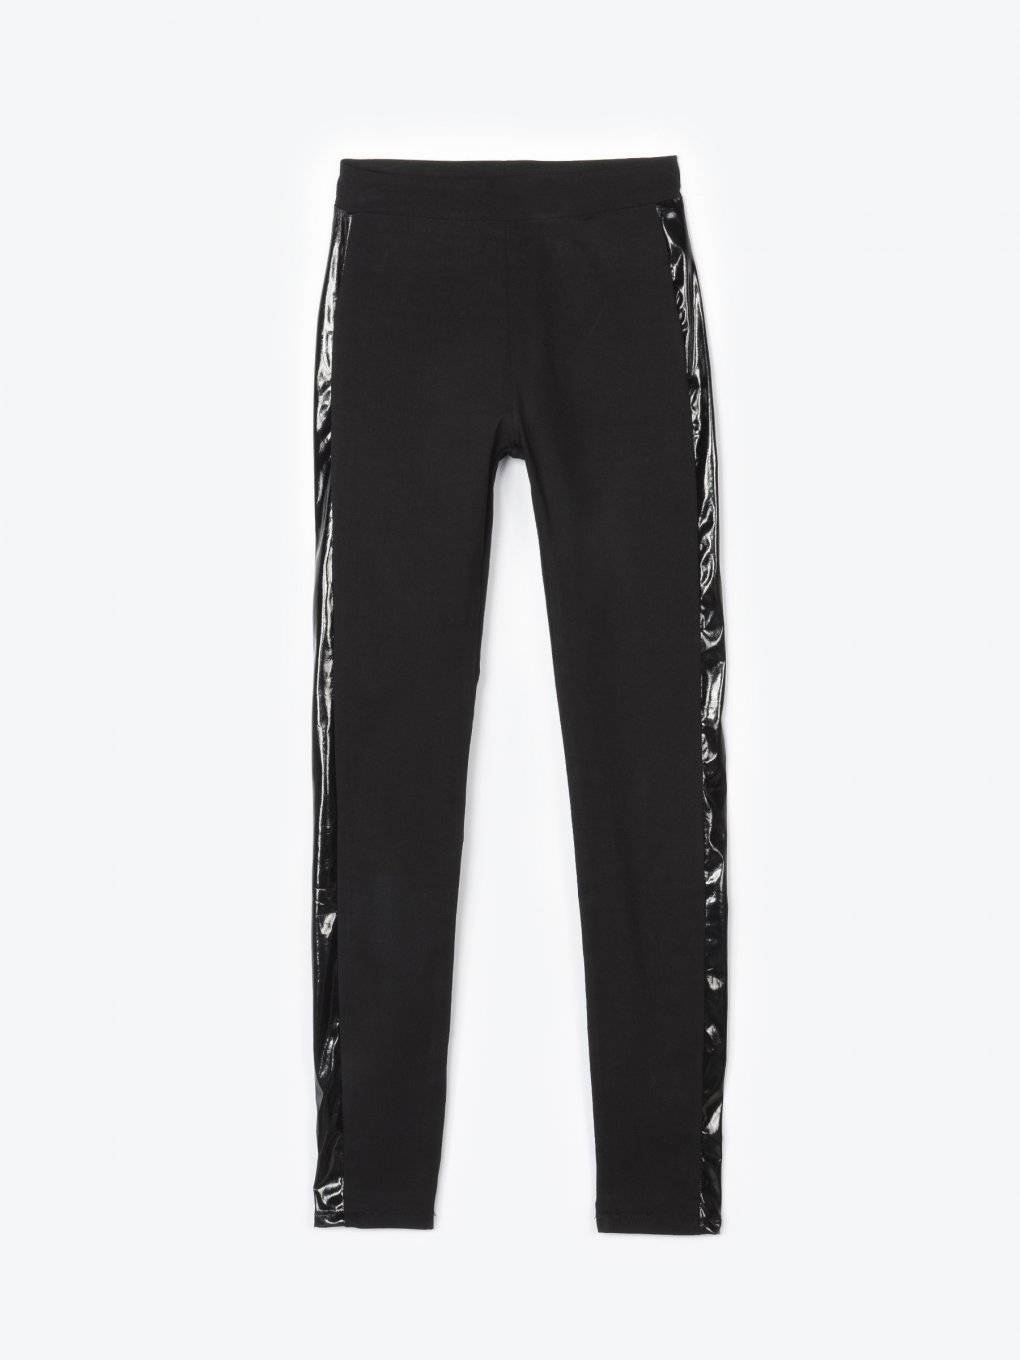 Skinny elastic knitted trousers with vinyl side stripe